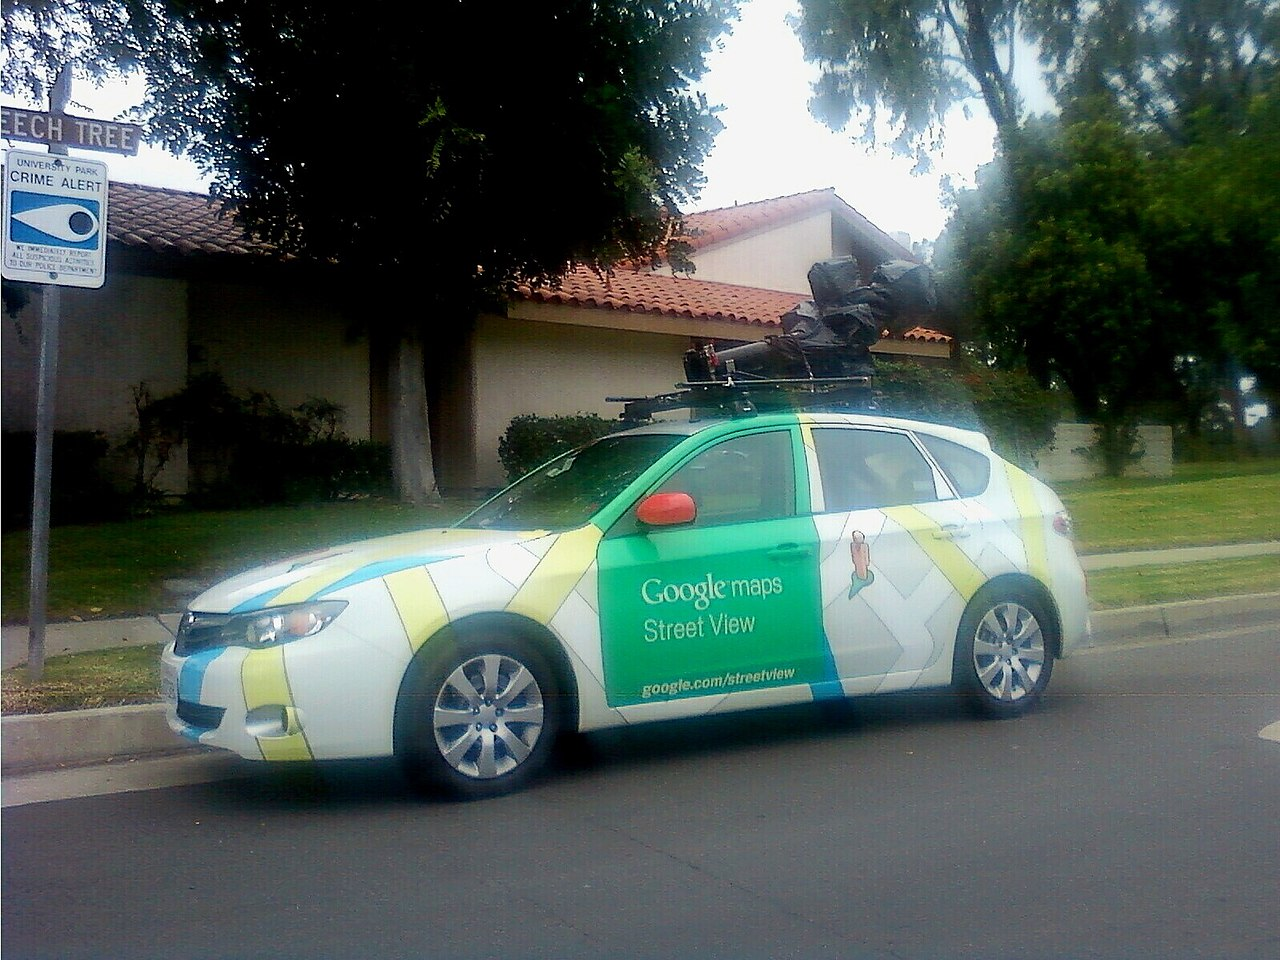 1280px-Google_Street_View_camera_car_in_Irvine%2C_CA_%282010%29-01 Google Map For My Mobile on my google docs, my google history, my nokia maps, weather maps, my msn maps, bing maps, my google profile, my maps app, my google calendar, my maps example, my places google, my google drive, my google business, satellite maps, my google gmail, my google contacts, my google search, my disney maps, my google mail, my google plus,